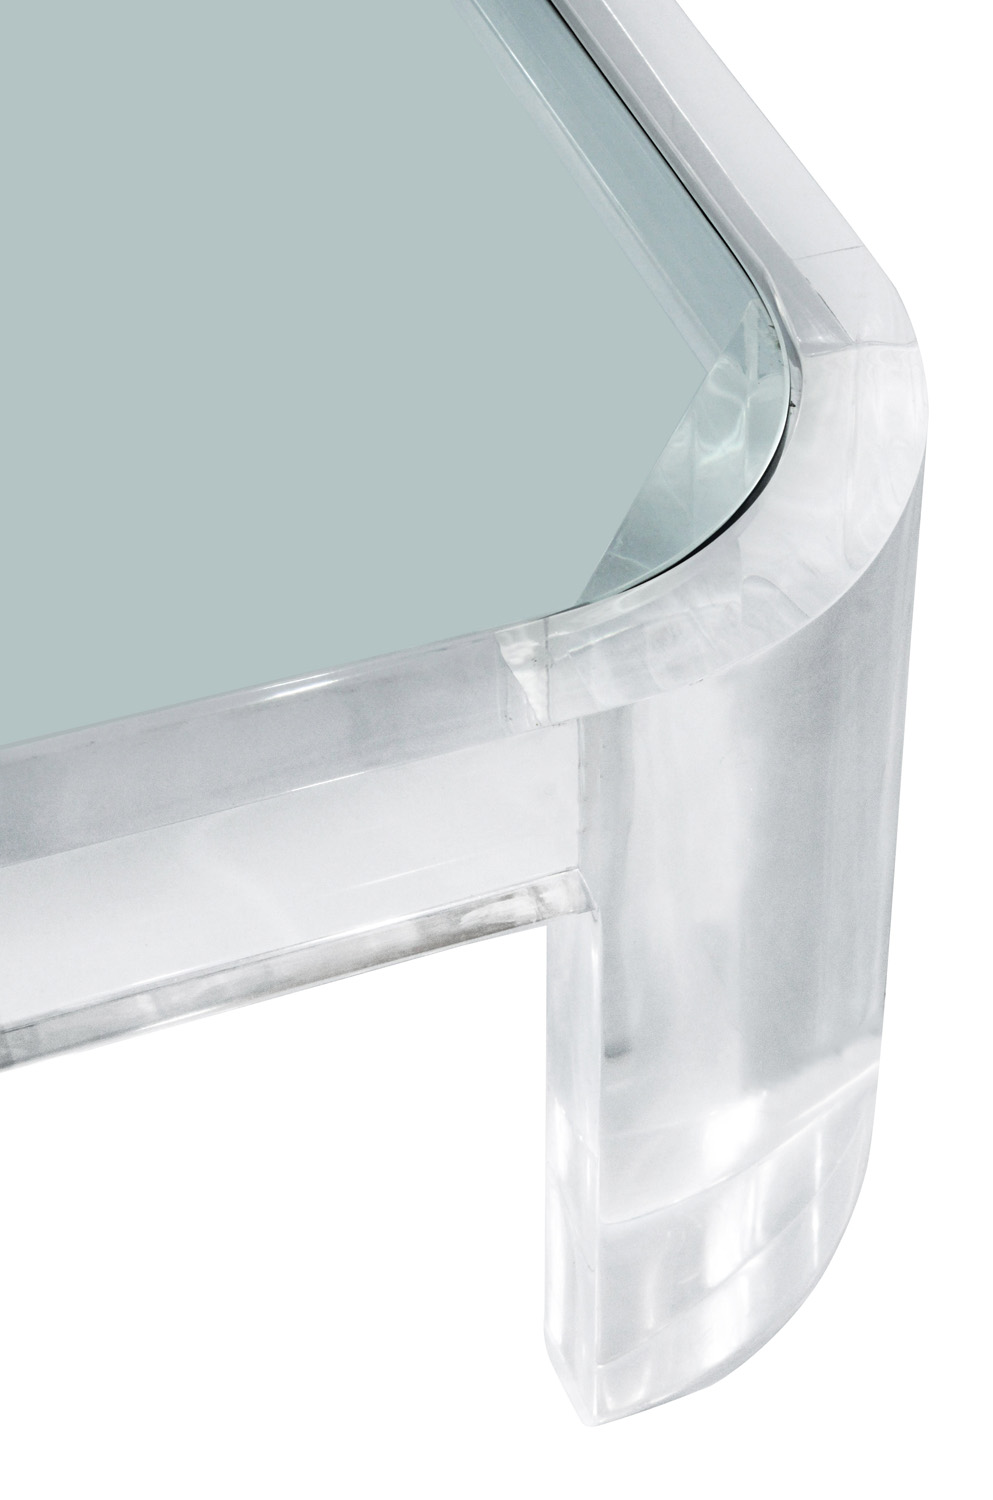 Prismatiques 75 54sq lucite radius corners coffeetable133 detail2 hires.jpg